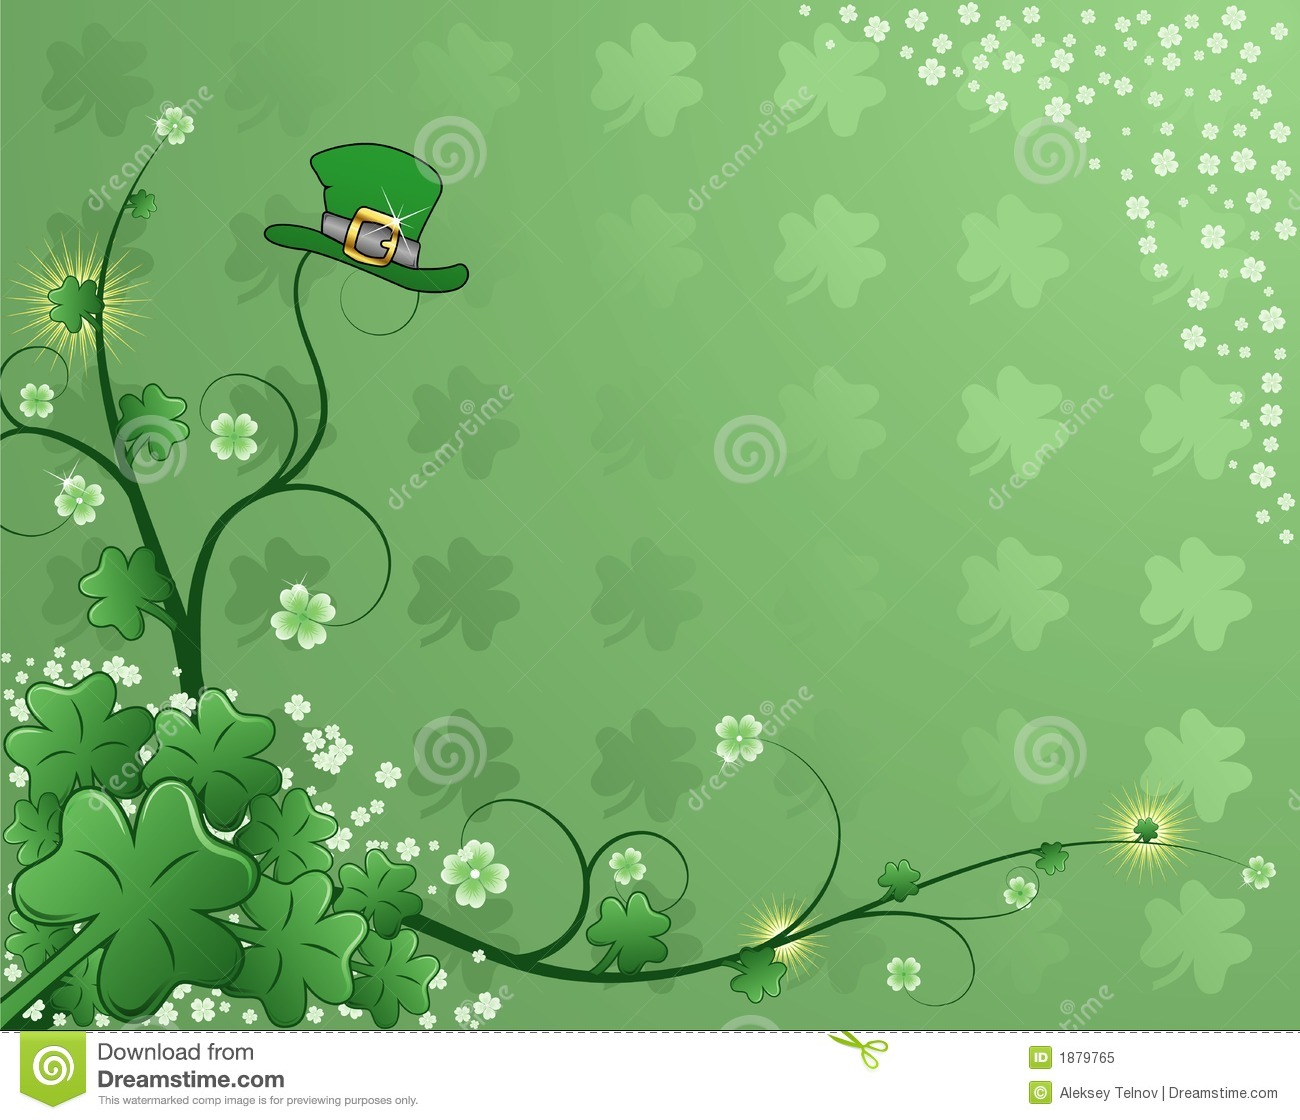 Free Download St Patricks Day Wallpaper Hd Irish Desktop Wallpaper St Patricks 1300x1120 For Your Desktop Mobile Tablet Explore 49 St Patrick S Free Wallpaper St Patrick S Day Wallpaper Images